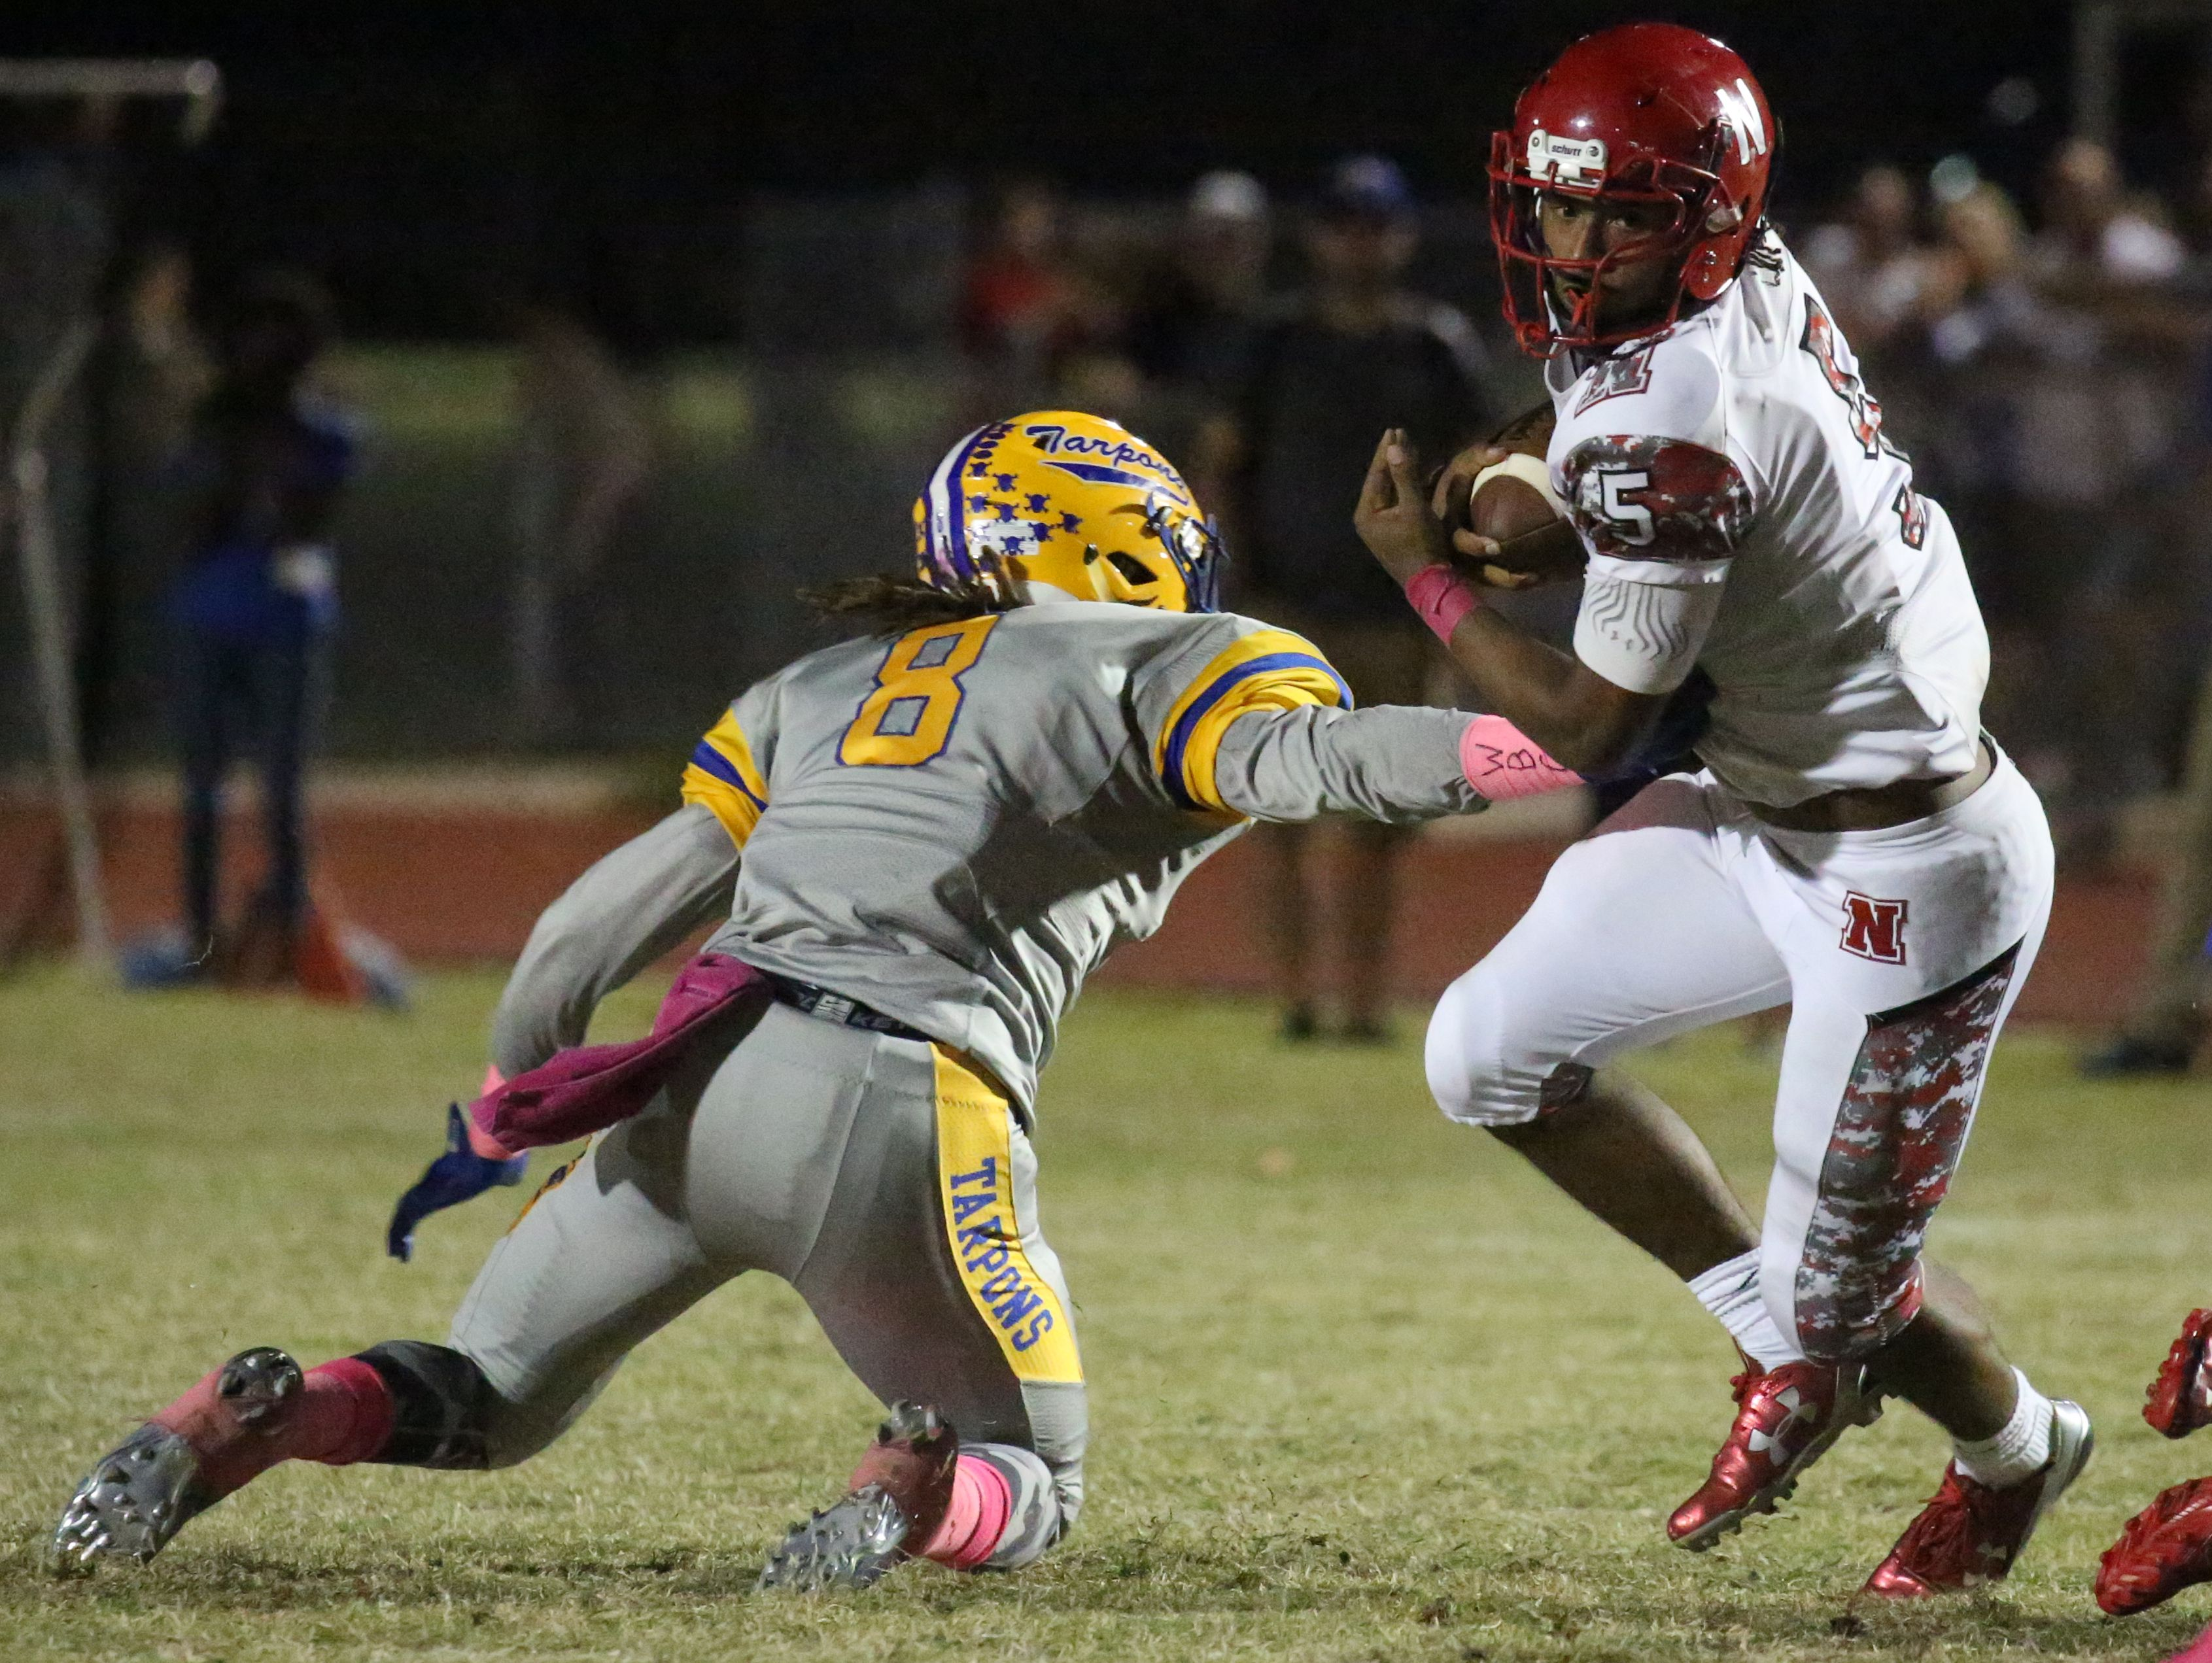 North Fort Myers' Fanajae Gotay tries to break from Charlotte's G'Vonte Price as North Fort Myers played at Charlotte Friday night.